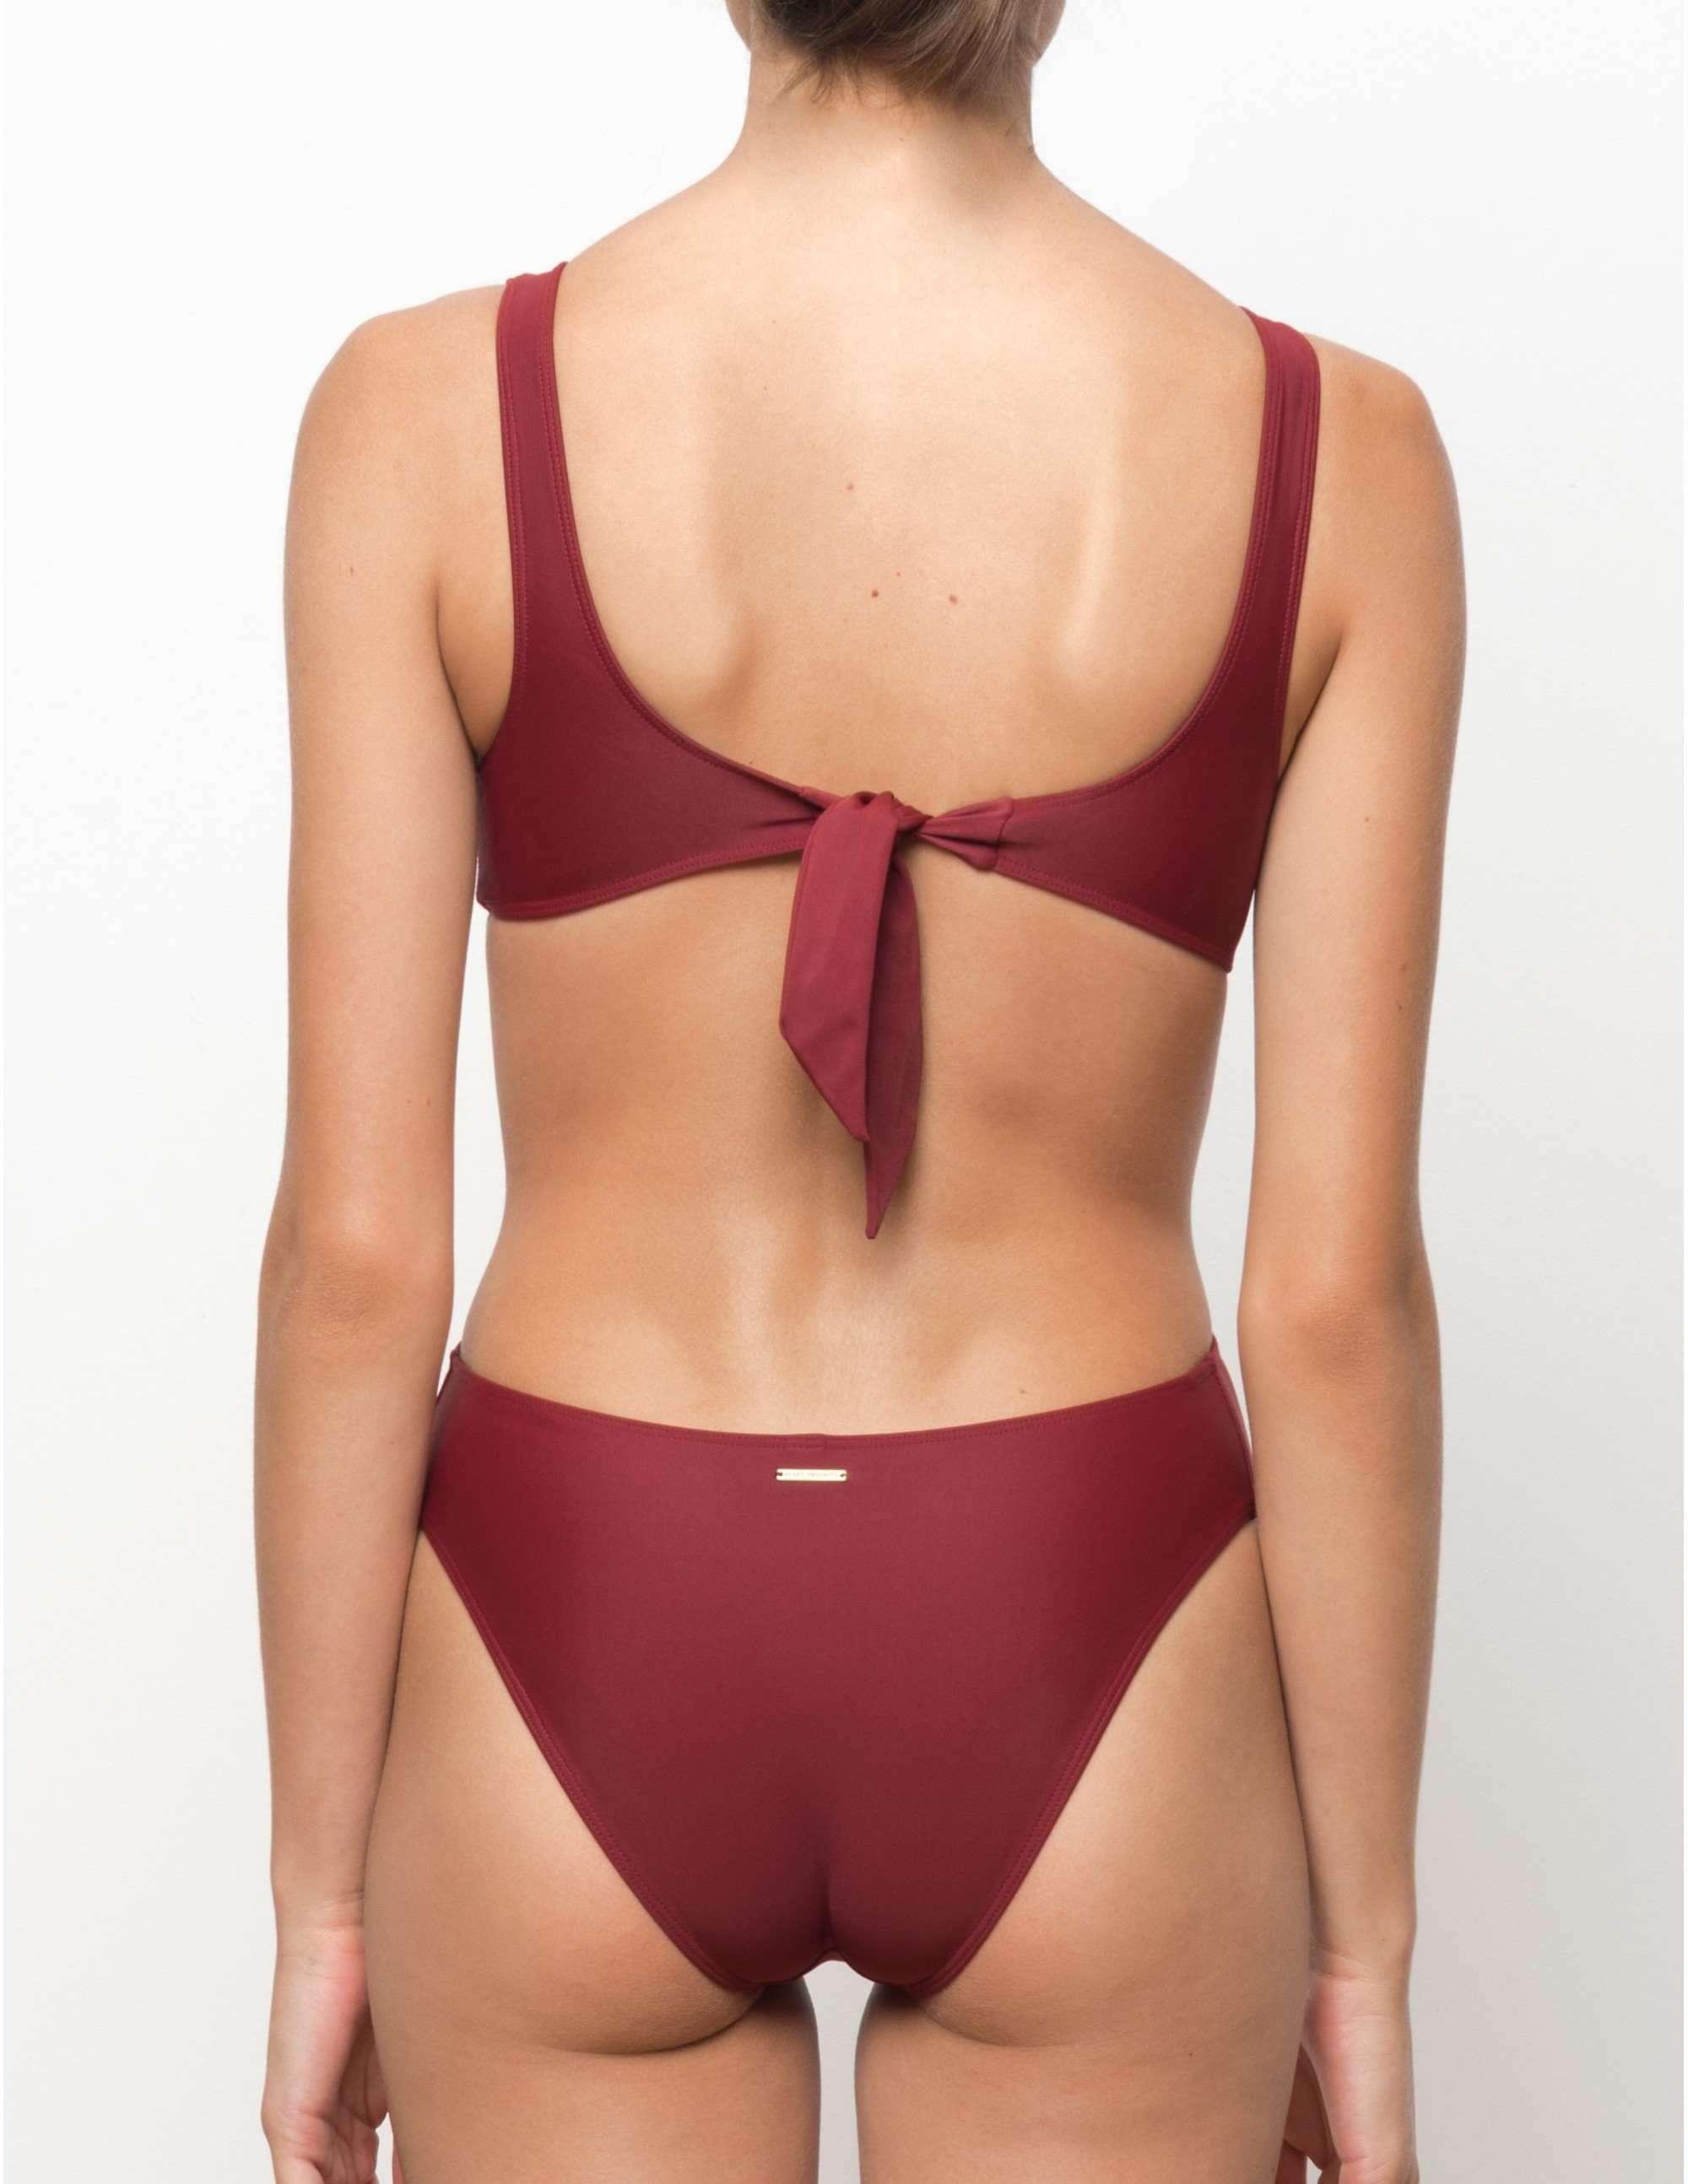 KILWA swimsuit - MASAAI